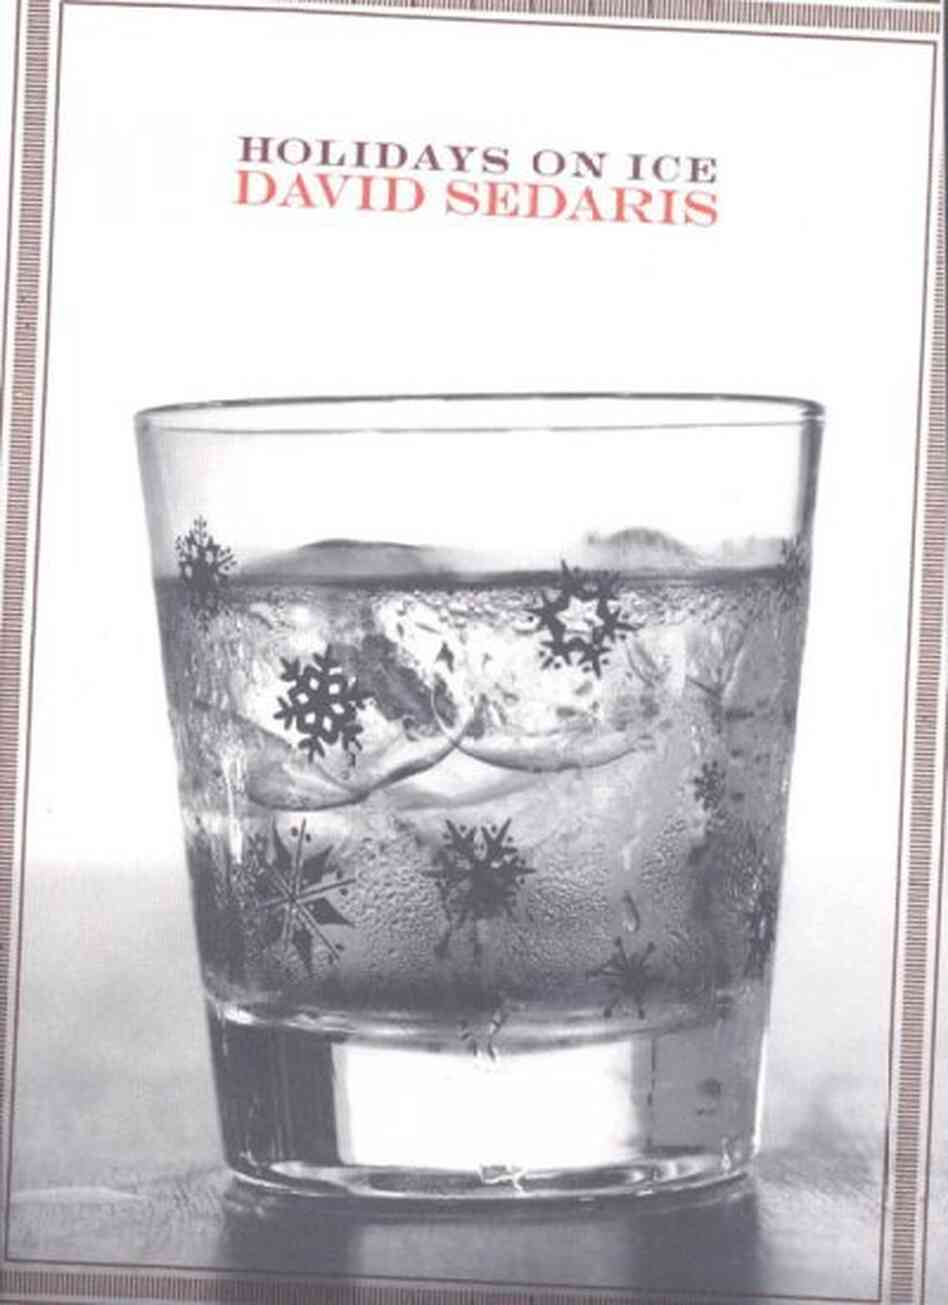 holidays relating to snowing conditions david sedaris booklet review